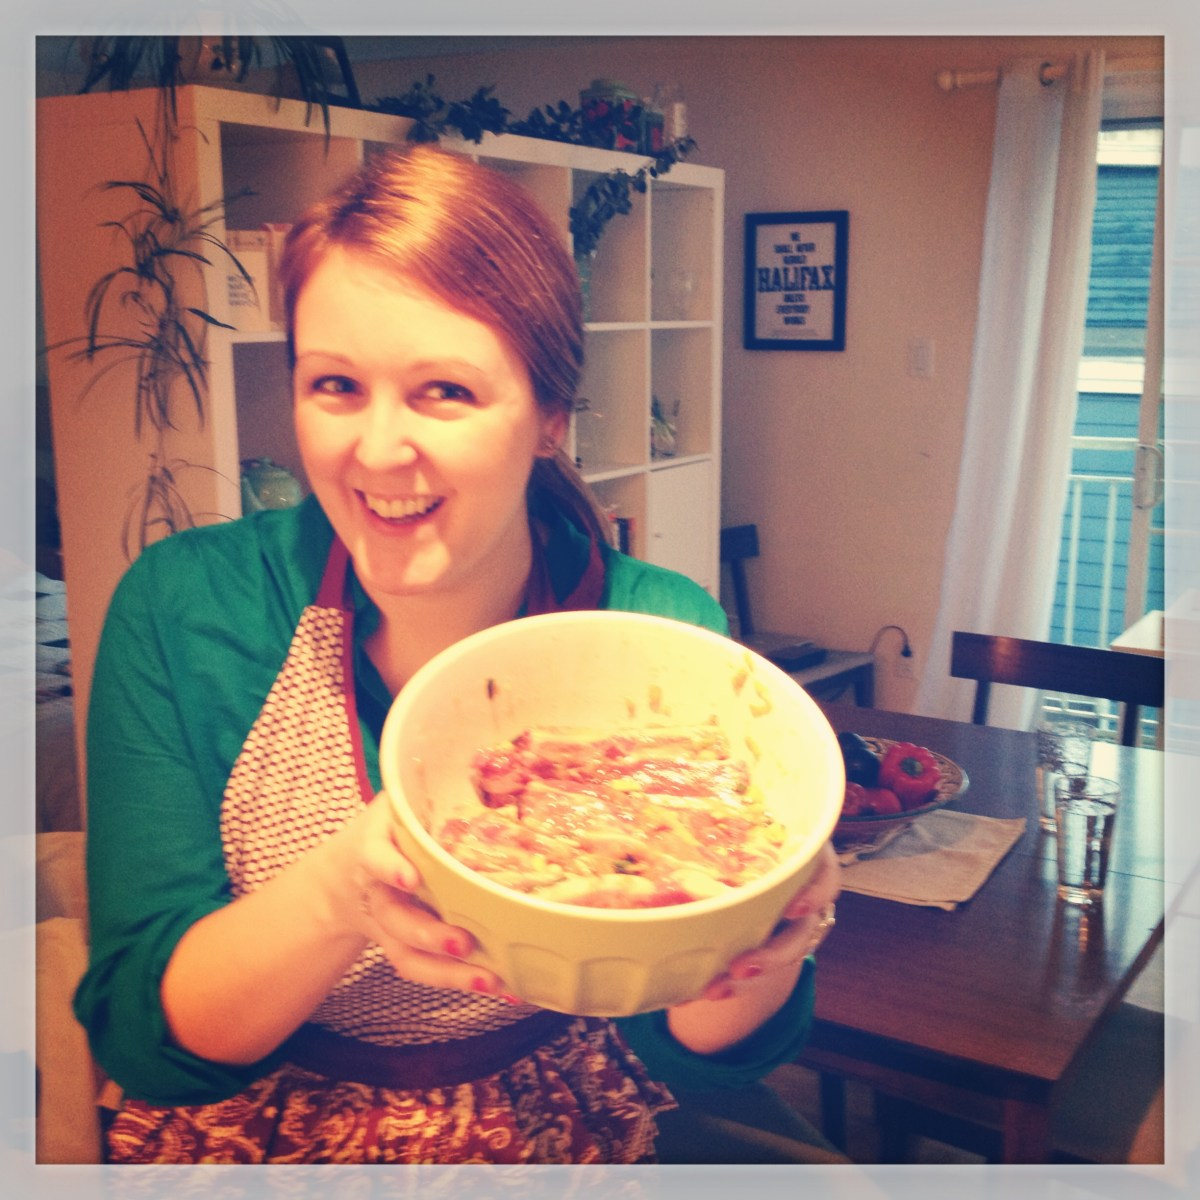 Me with the ribs marinating...they smelled amazing before they came anywhere near the stove!